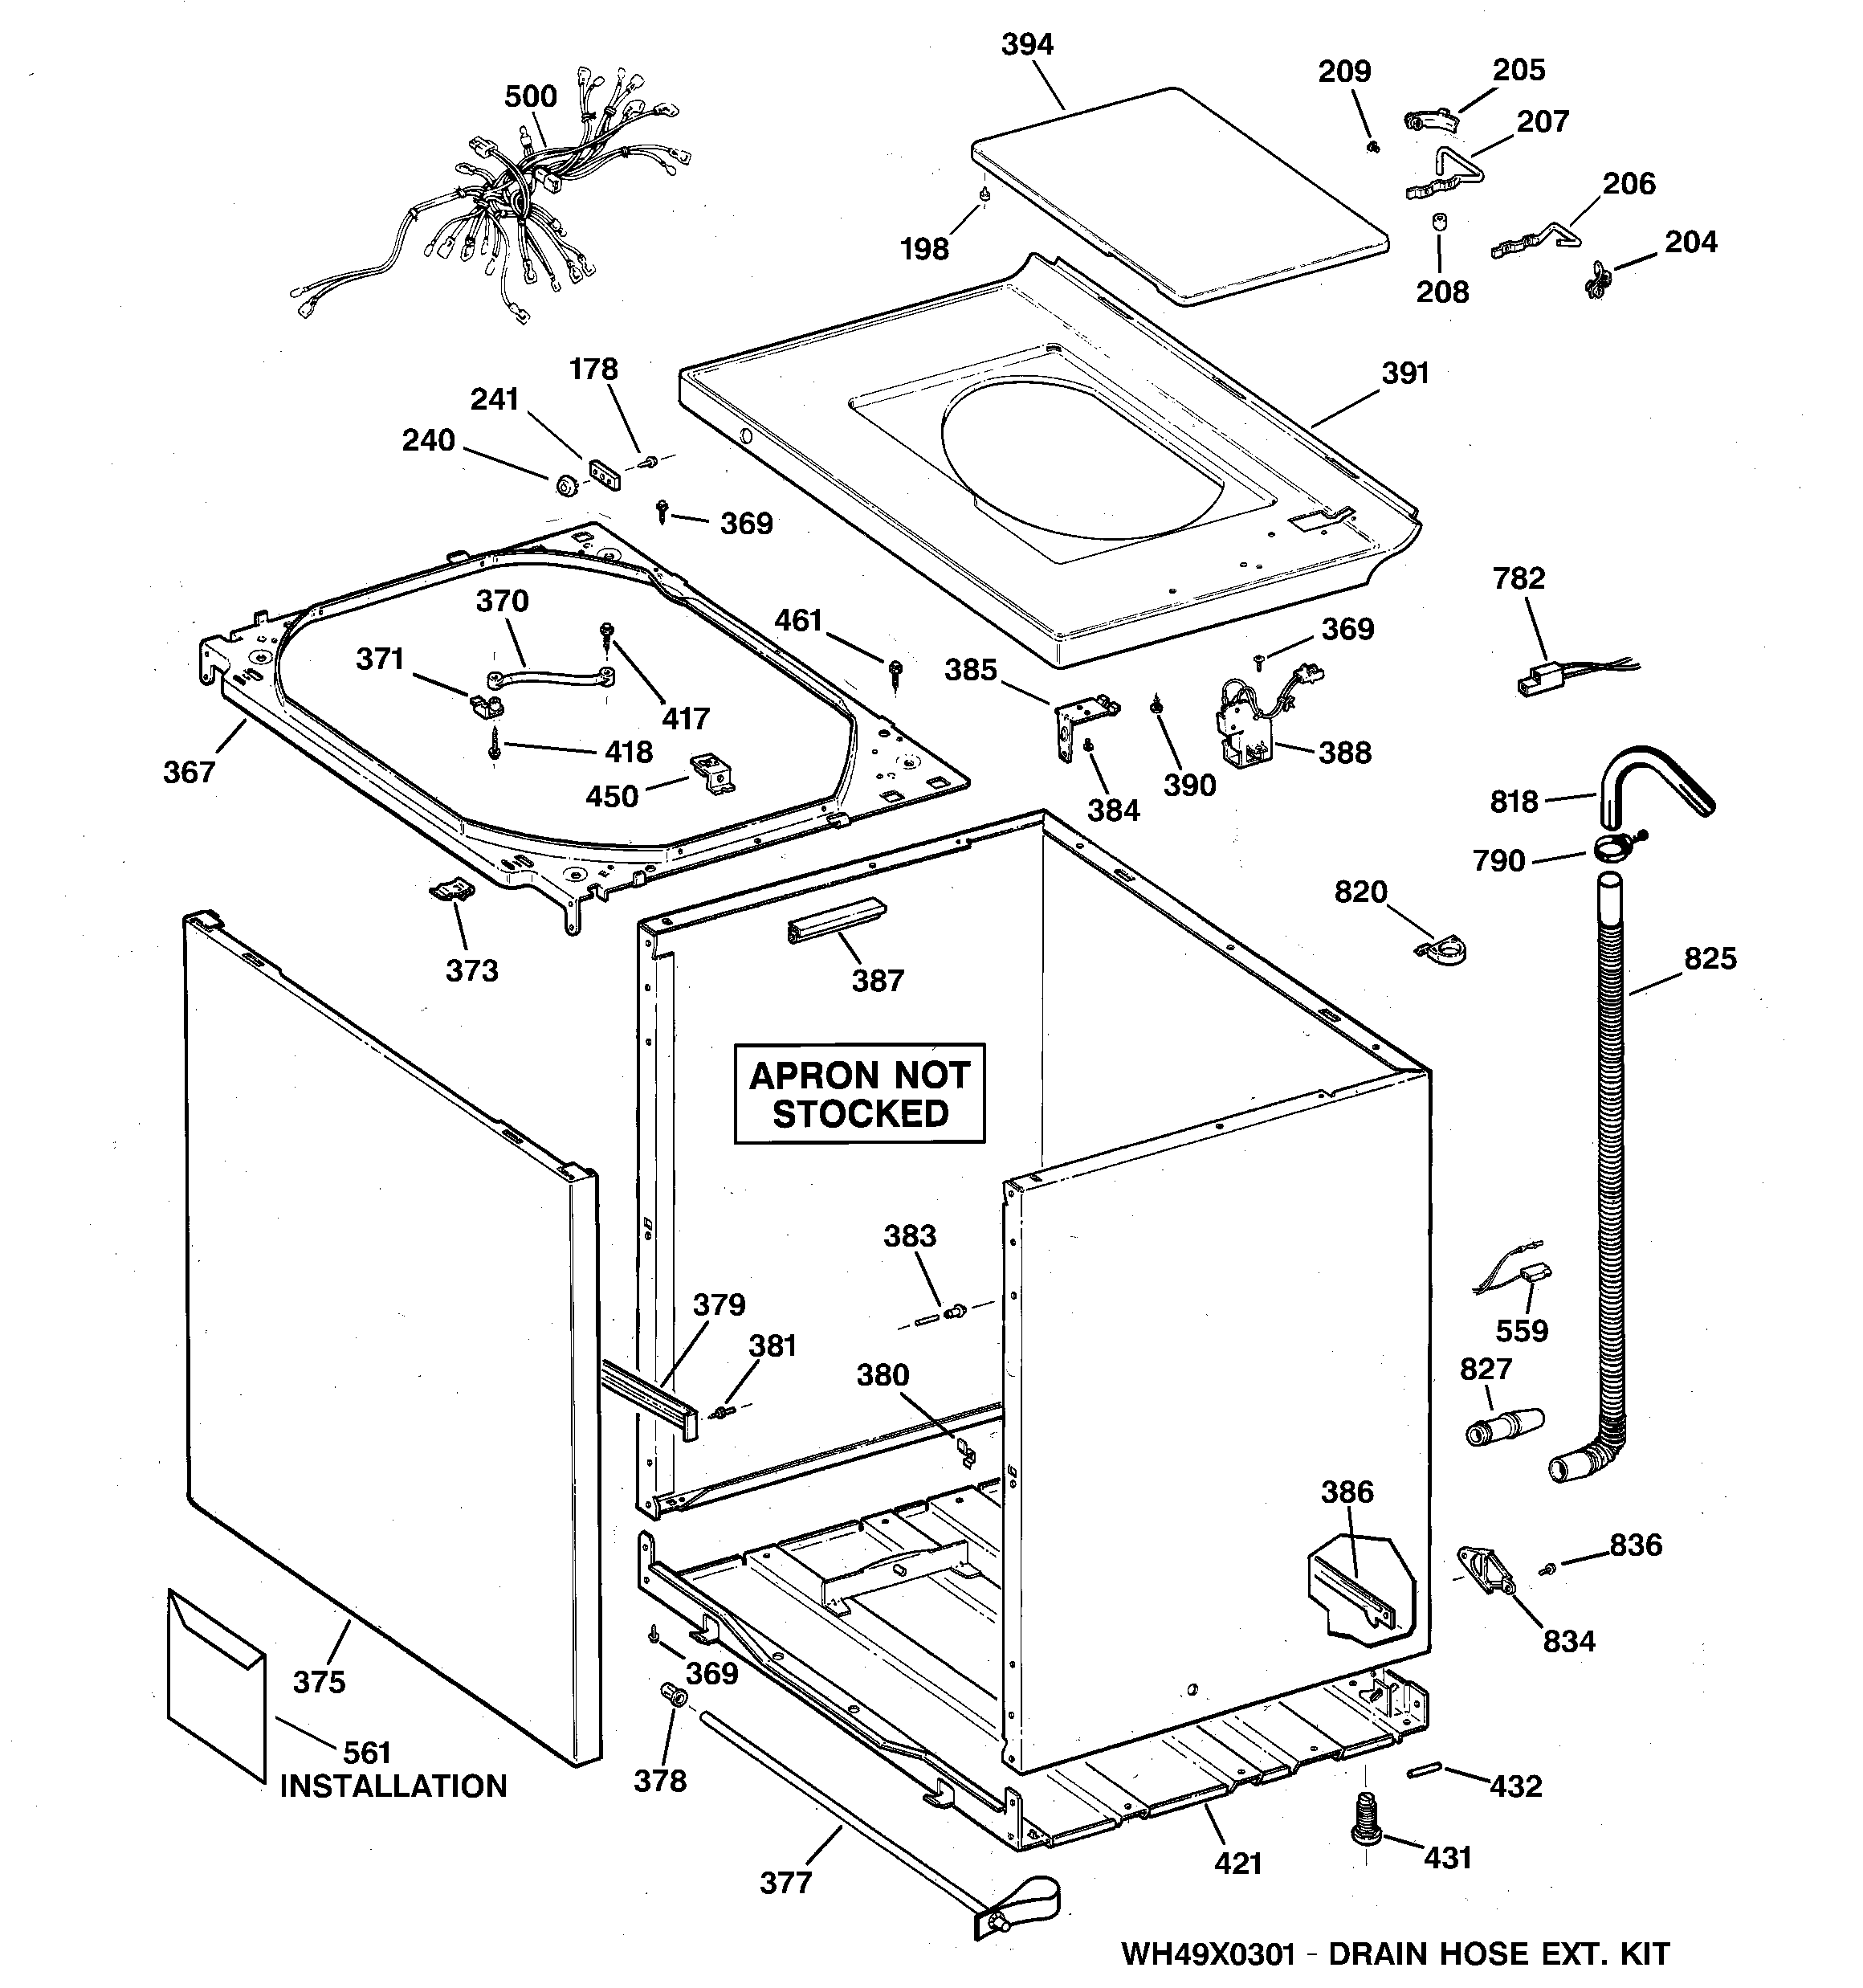 GE WCCB1030B0KC cabinet, cover & front panel diagram